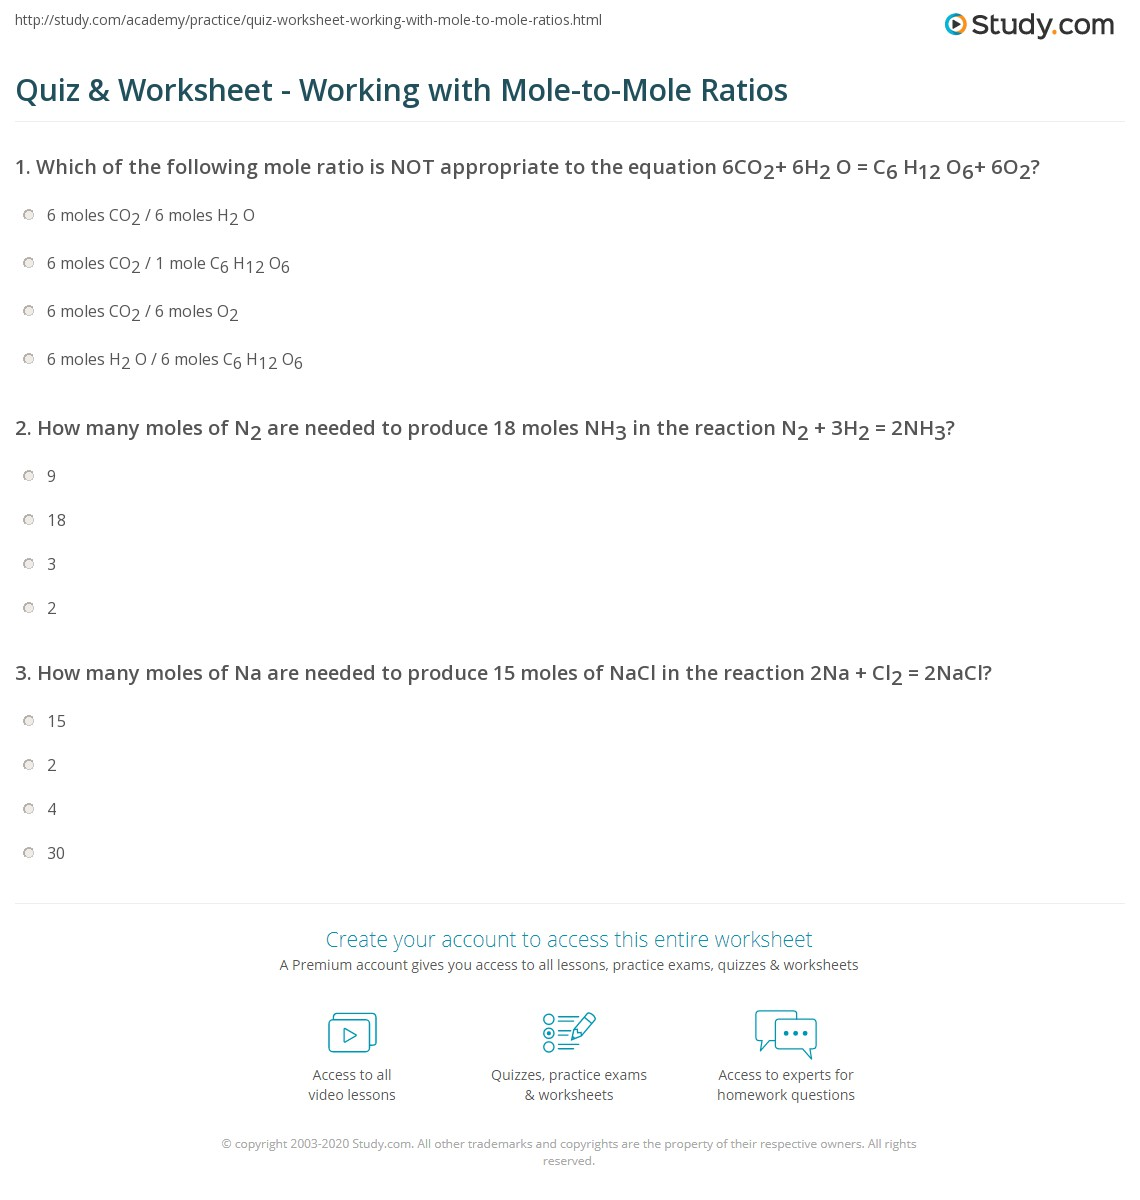 quiz worksheet working with mole to mole ratios study com rh study com Worksheets with Answer Keys 9.3 Study Guide